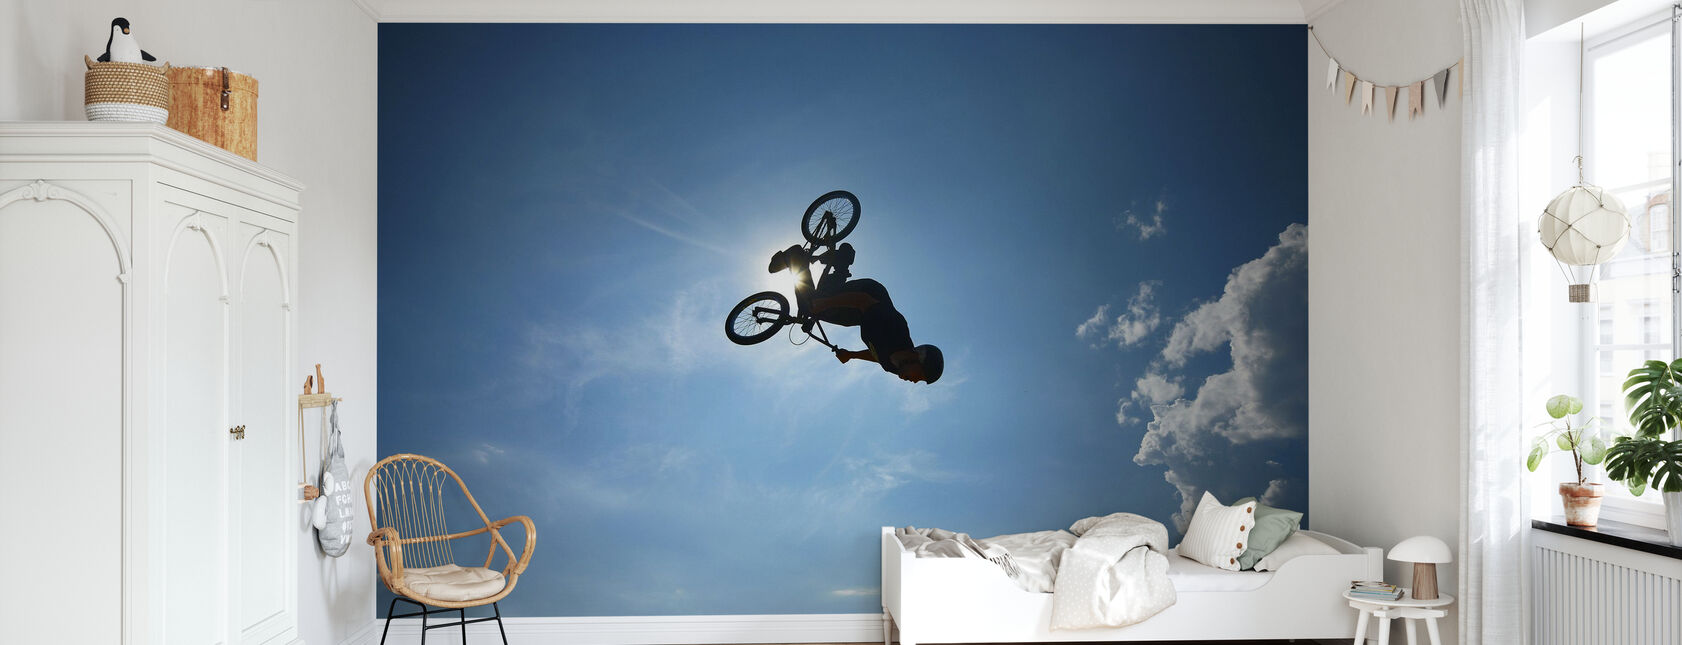 BMX Backflip - Behang - Kinderkamer